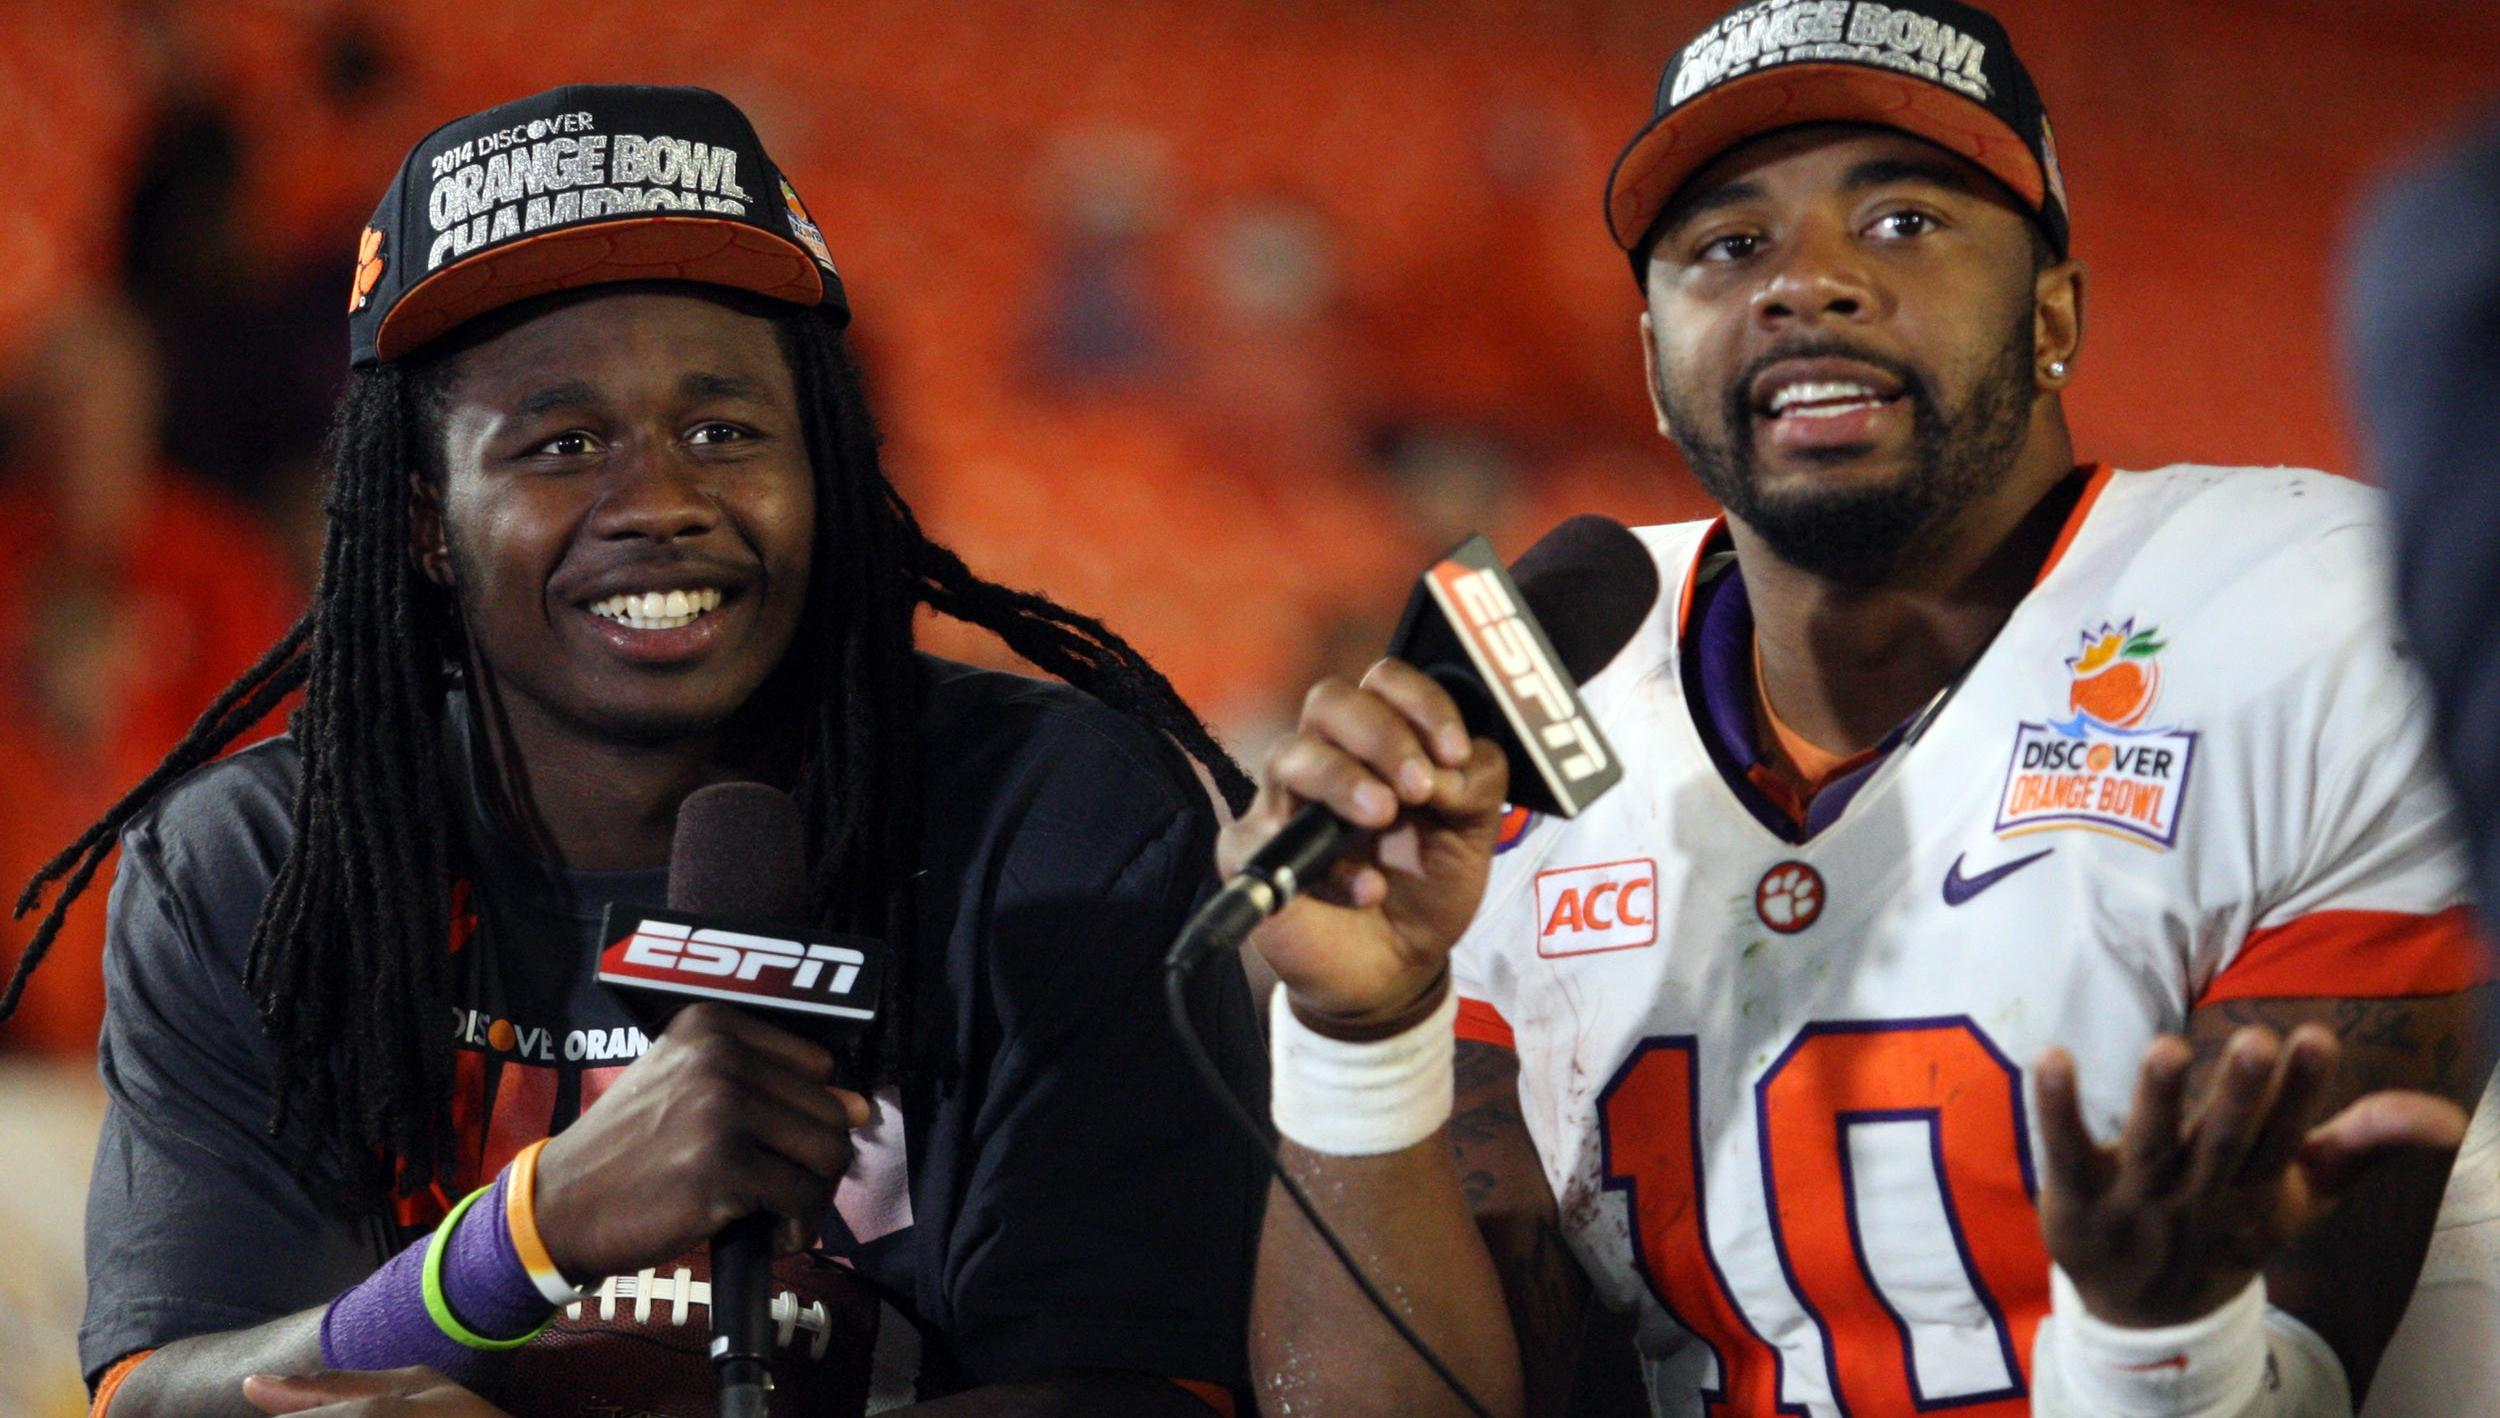 #ClemsonOrange Blog: Jan. 3